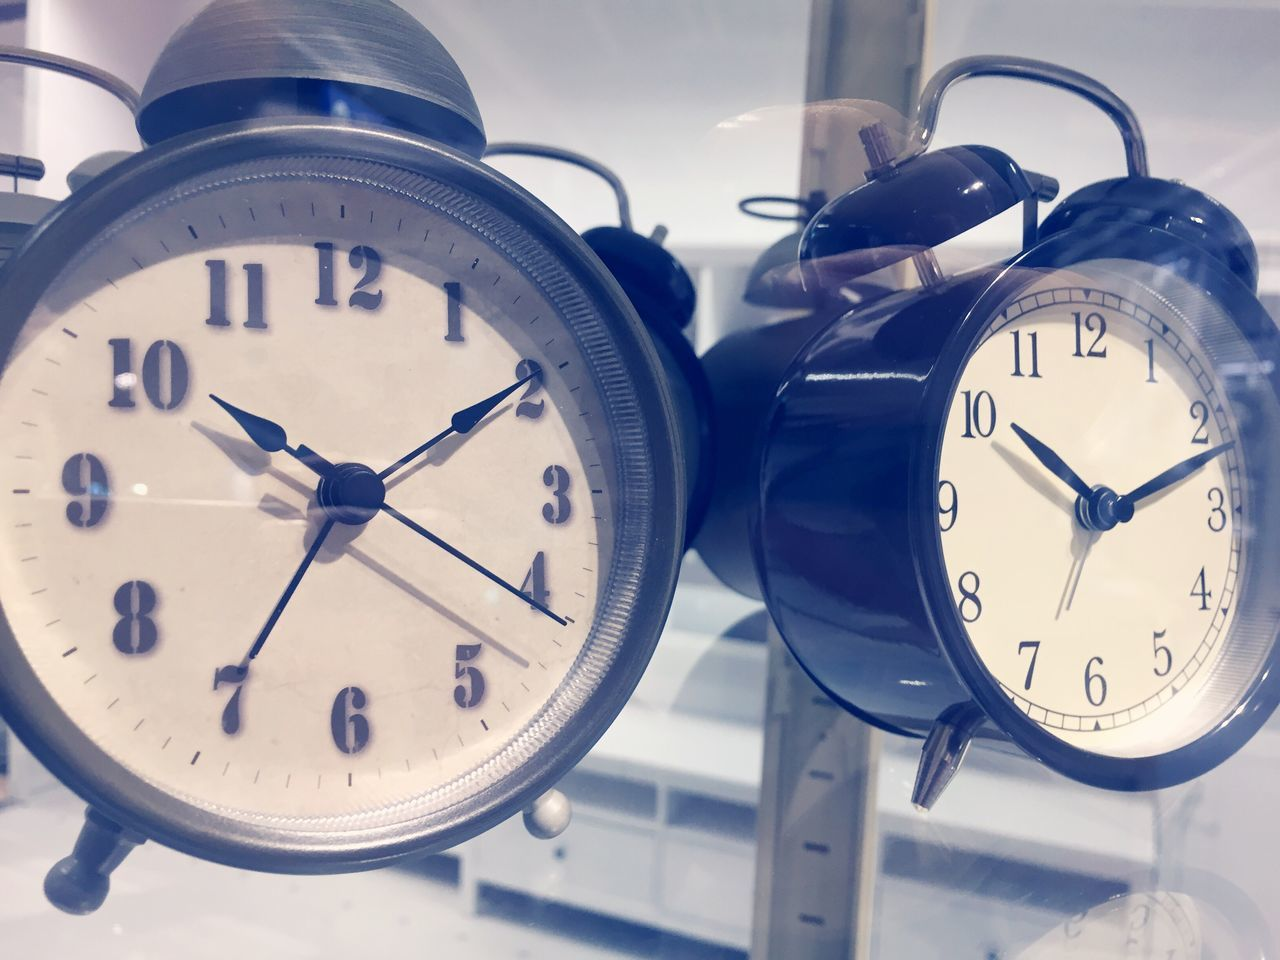 Time Clock Minute Hand Alarm Clock Clock Face Number Hour Hand Instrument Of Time Close-up No People Indoors  Two Clocks Alarm Clocks